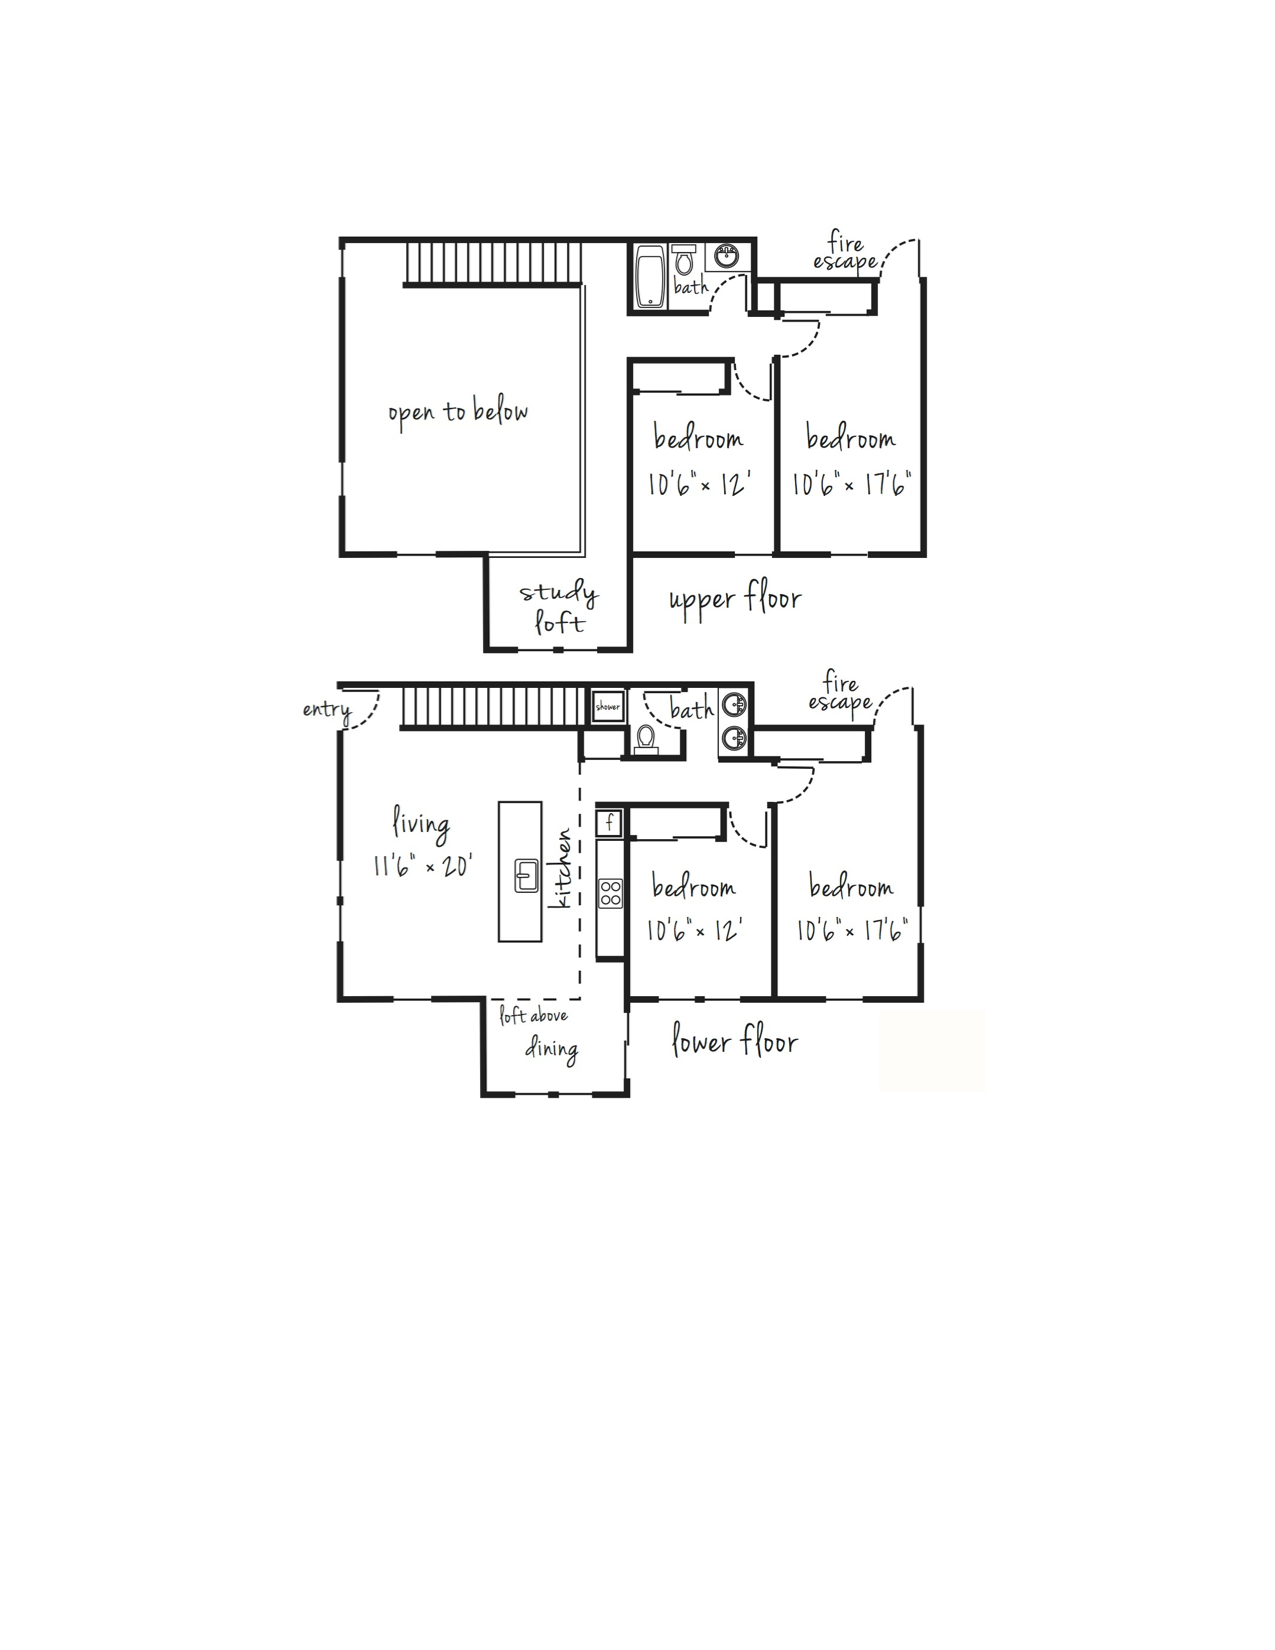 4x2 Townhouse Individual Lease Program Floor Plan 3